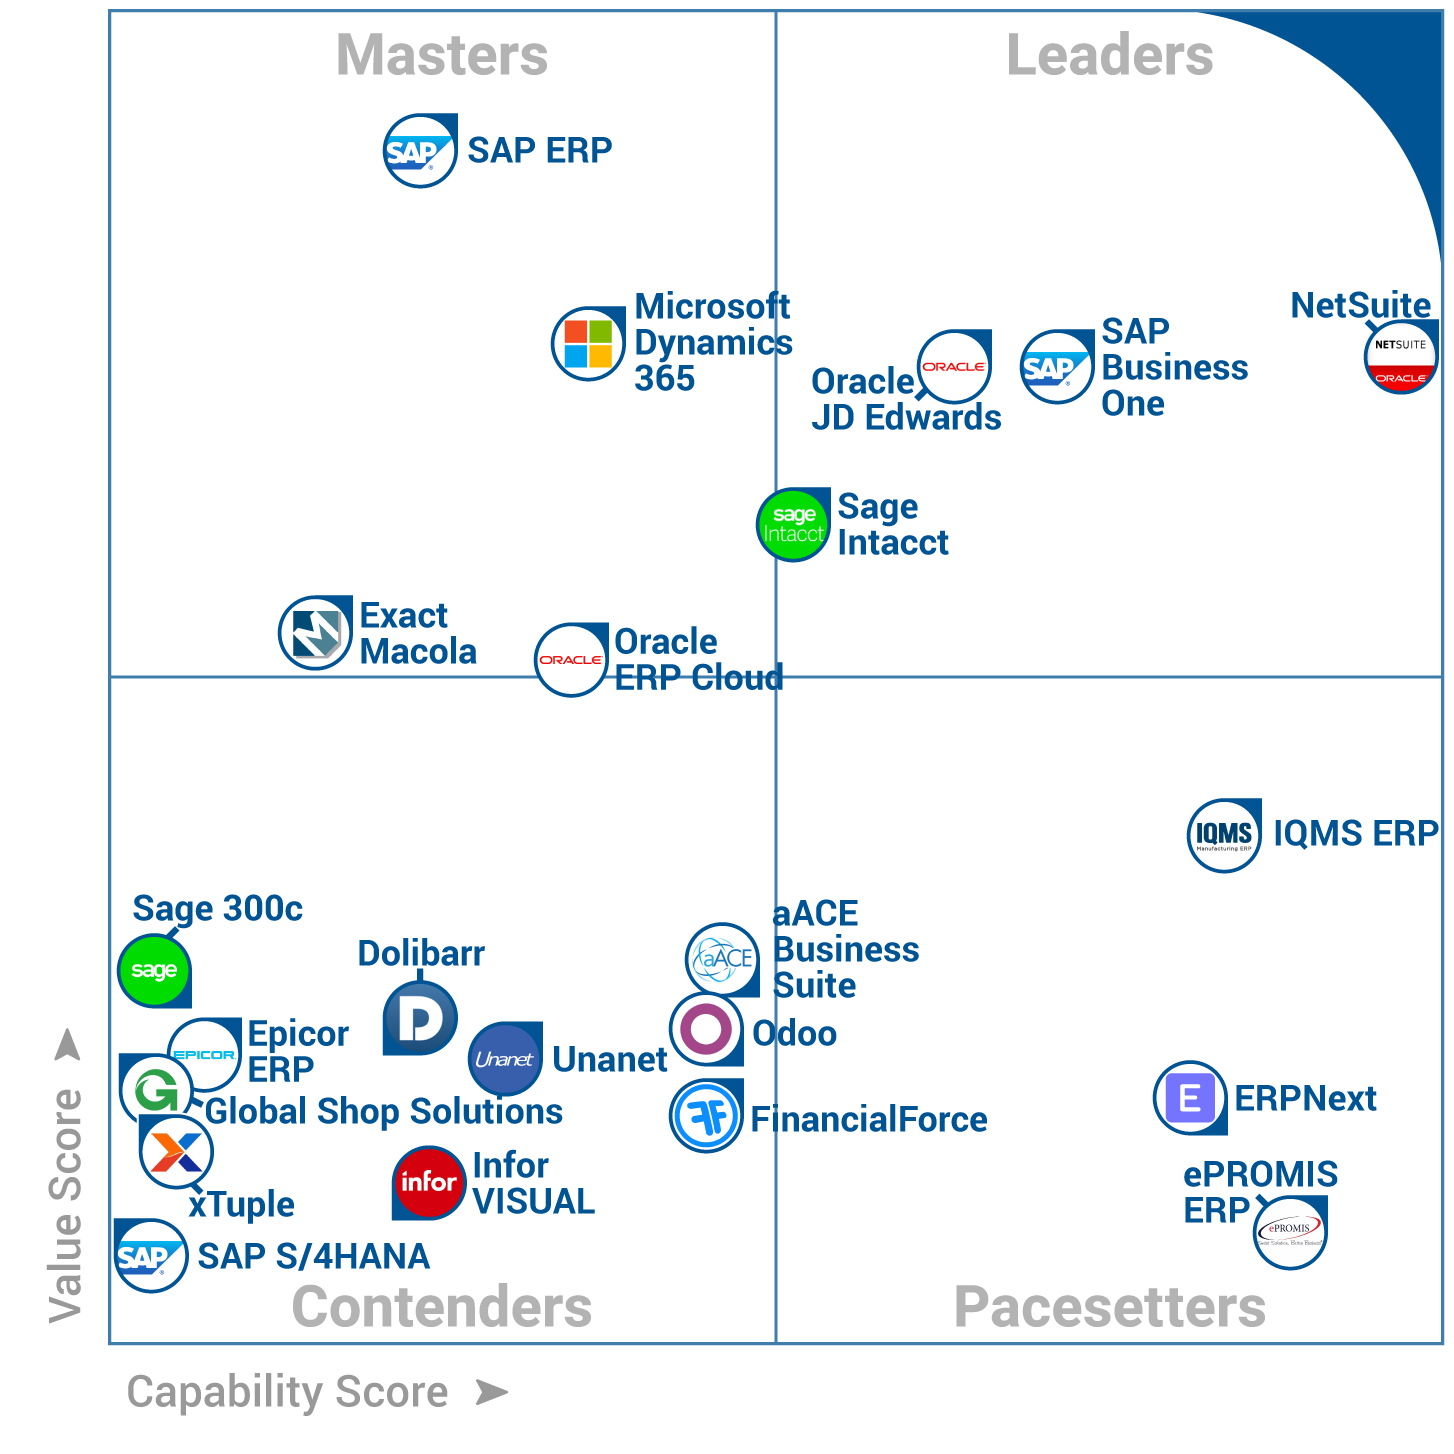 Gartner Frontrunners Report Names Sap Business One And